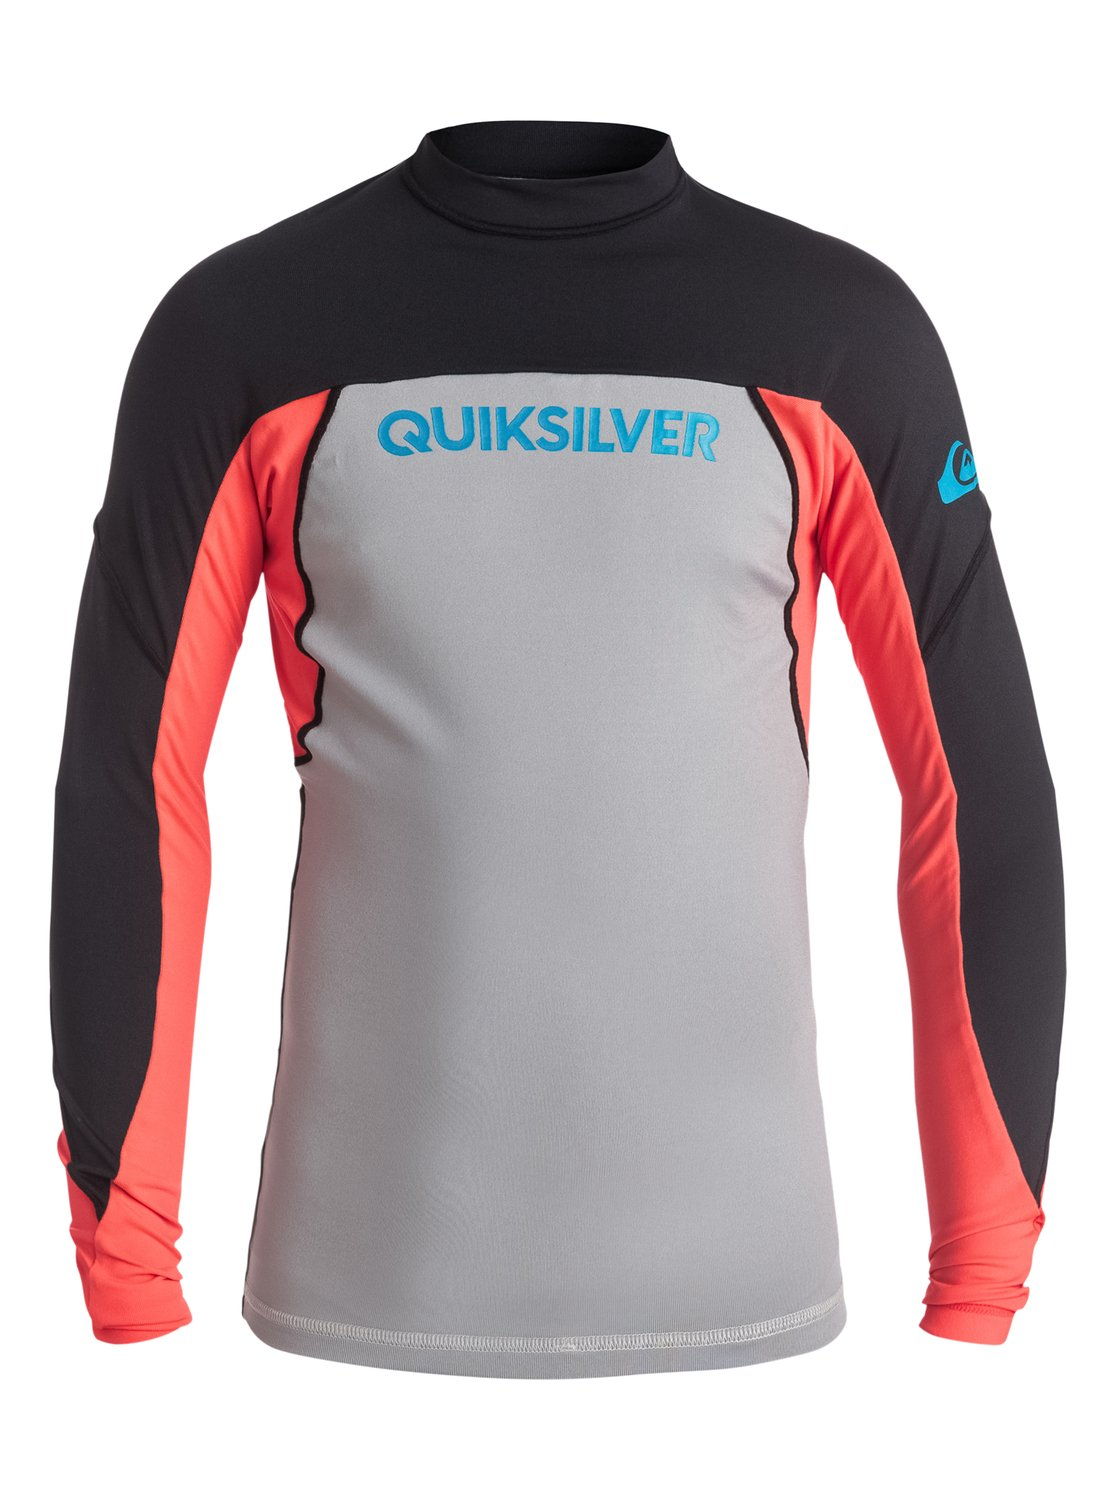 Boy's 8-16 Performer Long Sleeve Rashguard от Quiksilver RU